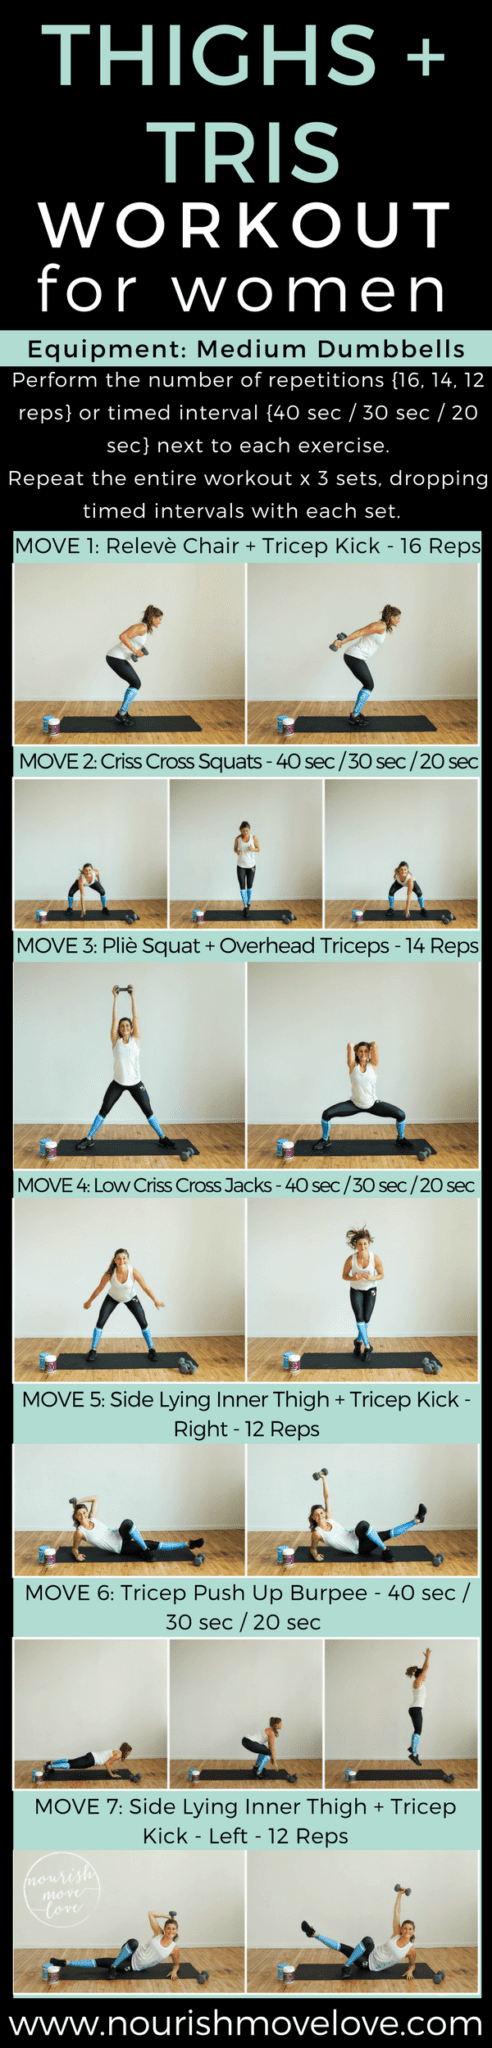 Thighs + Triceps Workout For Women | www.nourishmovelove.com